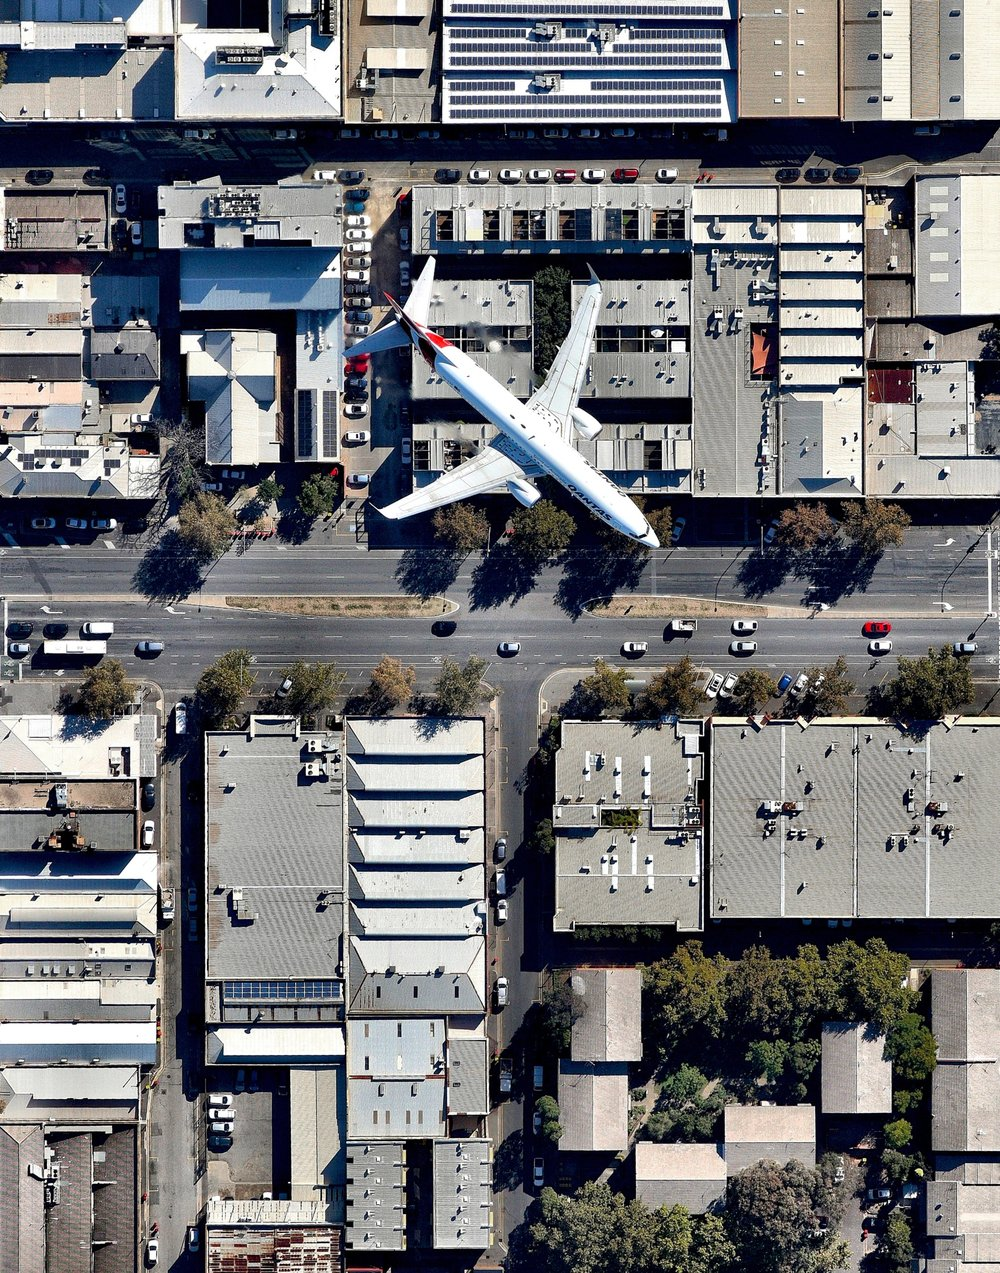 """A Qantas jet flies over Wakefield Street in Adelaide, South Australia, after taking off from Adelaide Airport. Adelaide is the fifth-largest city in Australia, and its airport is the country's fifth-busiest. Between 2016 and 2017, it served roughly 8 million passengers and saw an 11% increase in international travelers.  34°55'41.2""""S, 138°36'25.5""""E  Source imagery: Nearmap"""